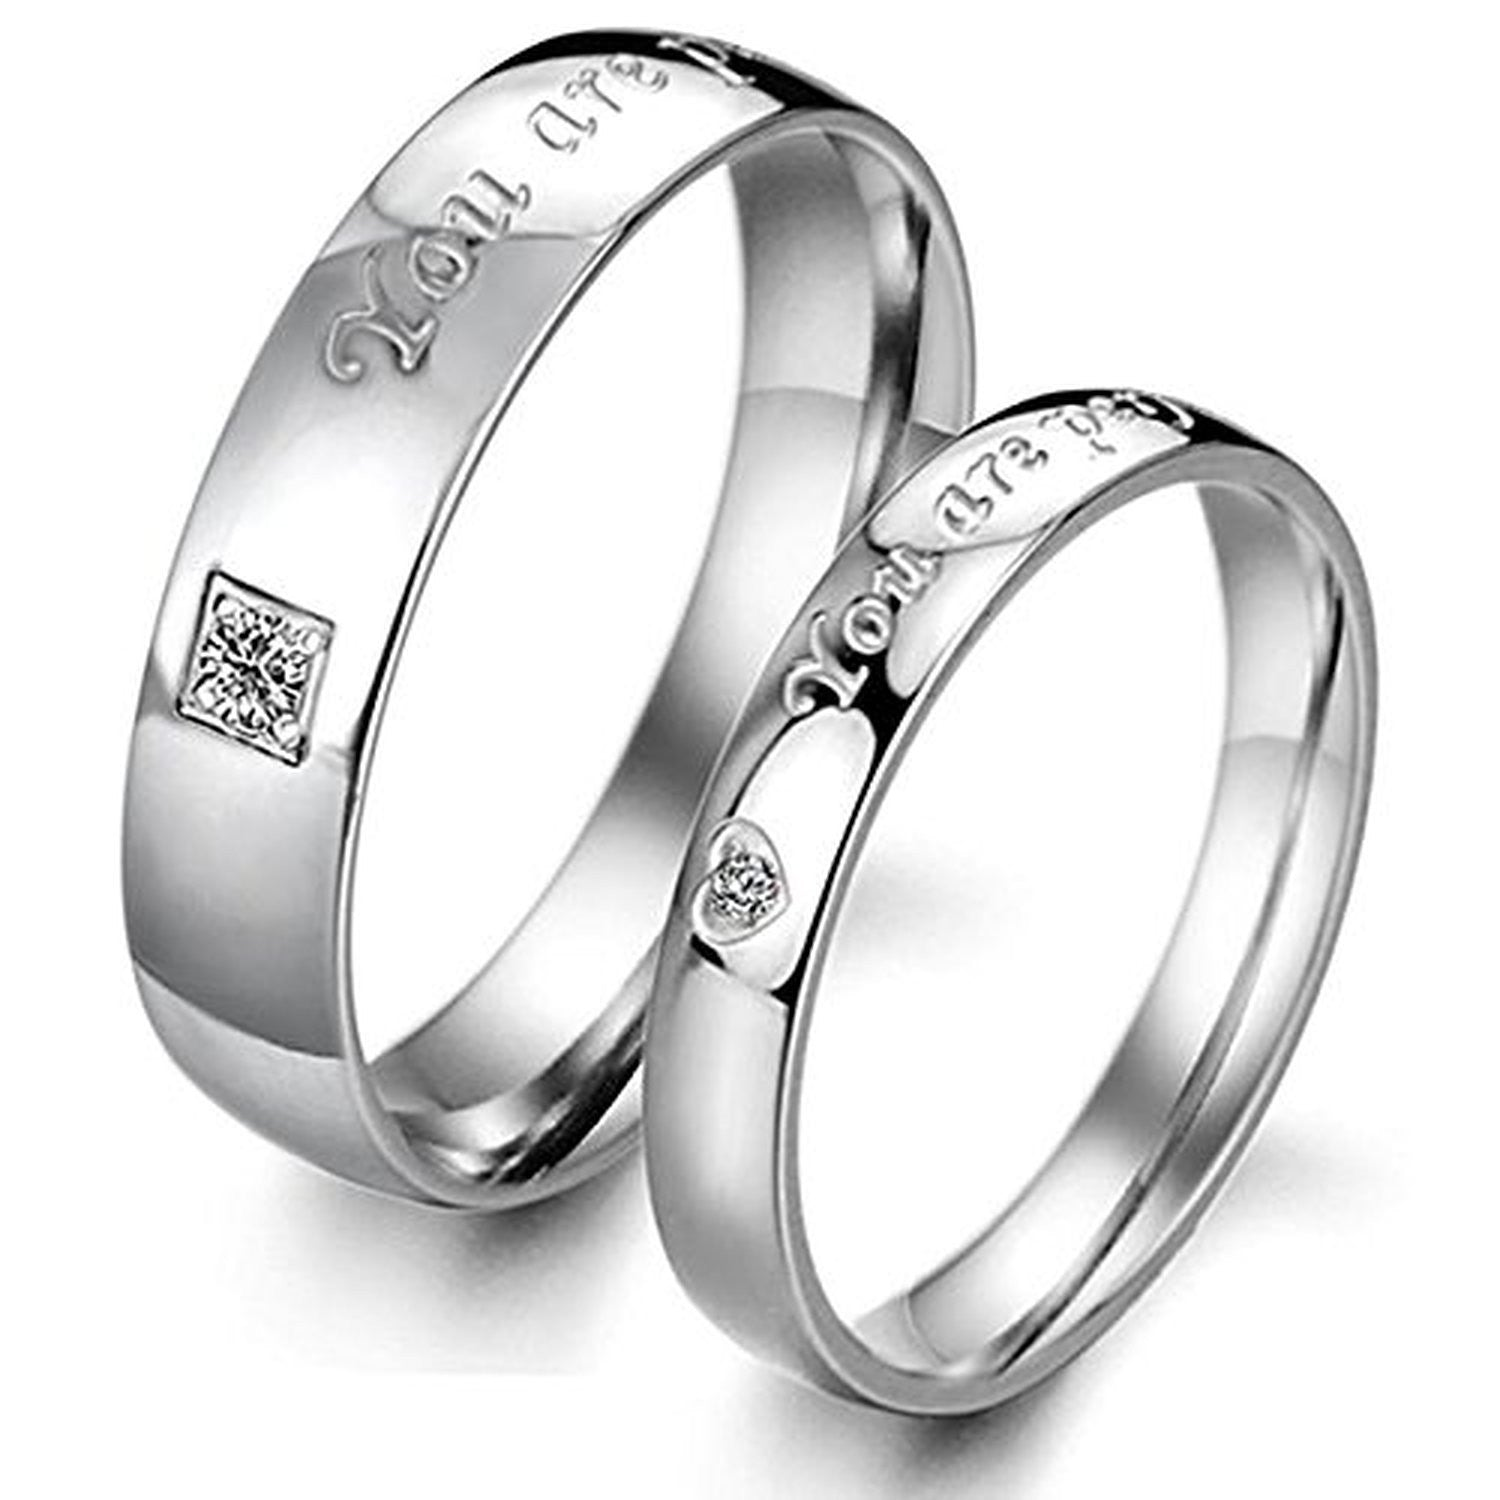 sanyangfrp rings and arts bands ring pictures set free for hers titanium his matching clip him wedding evermarker trio